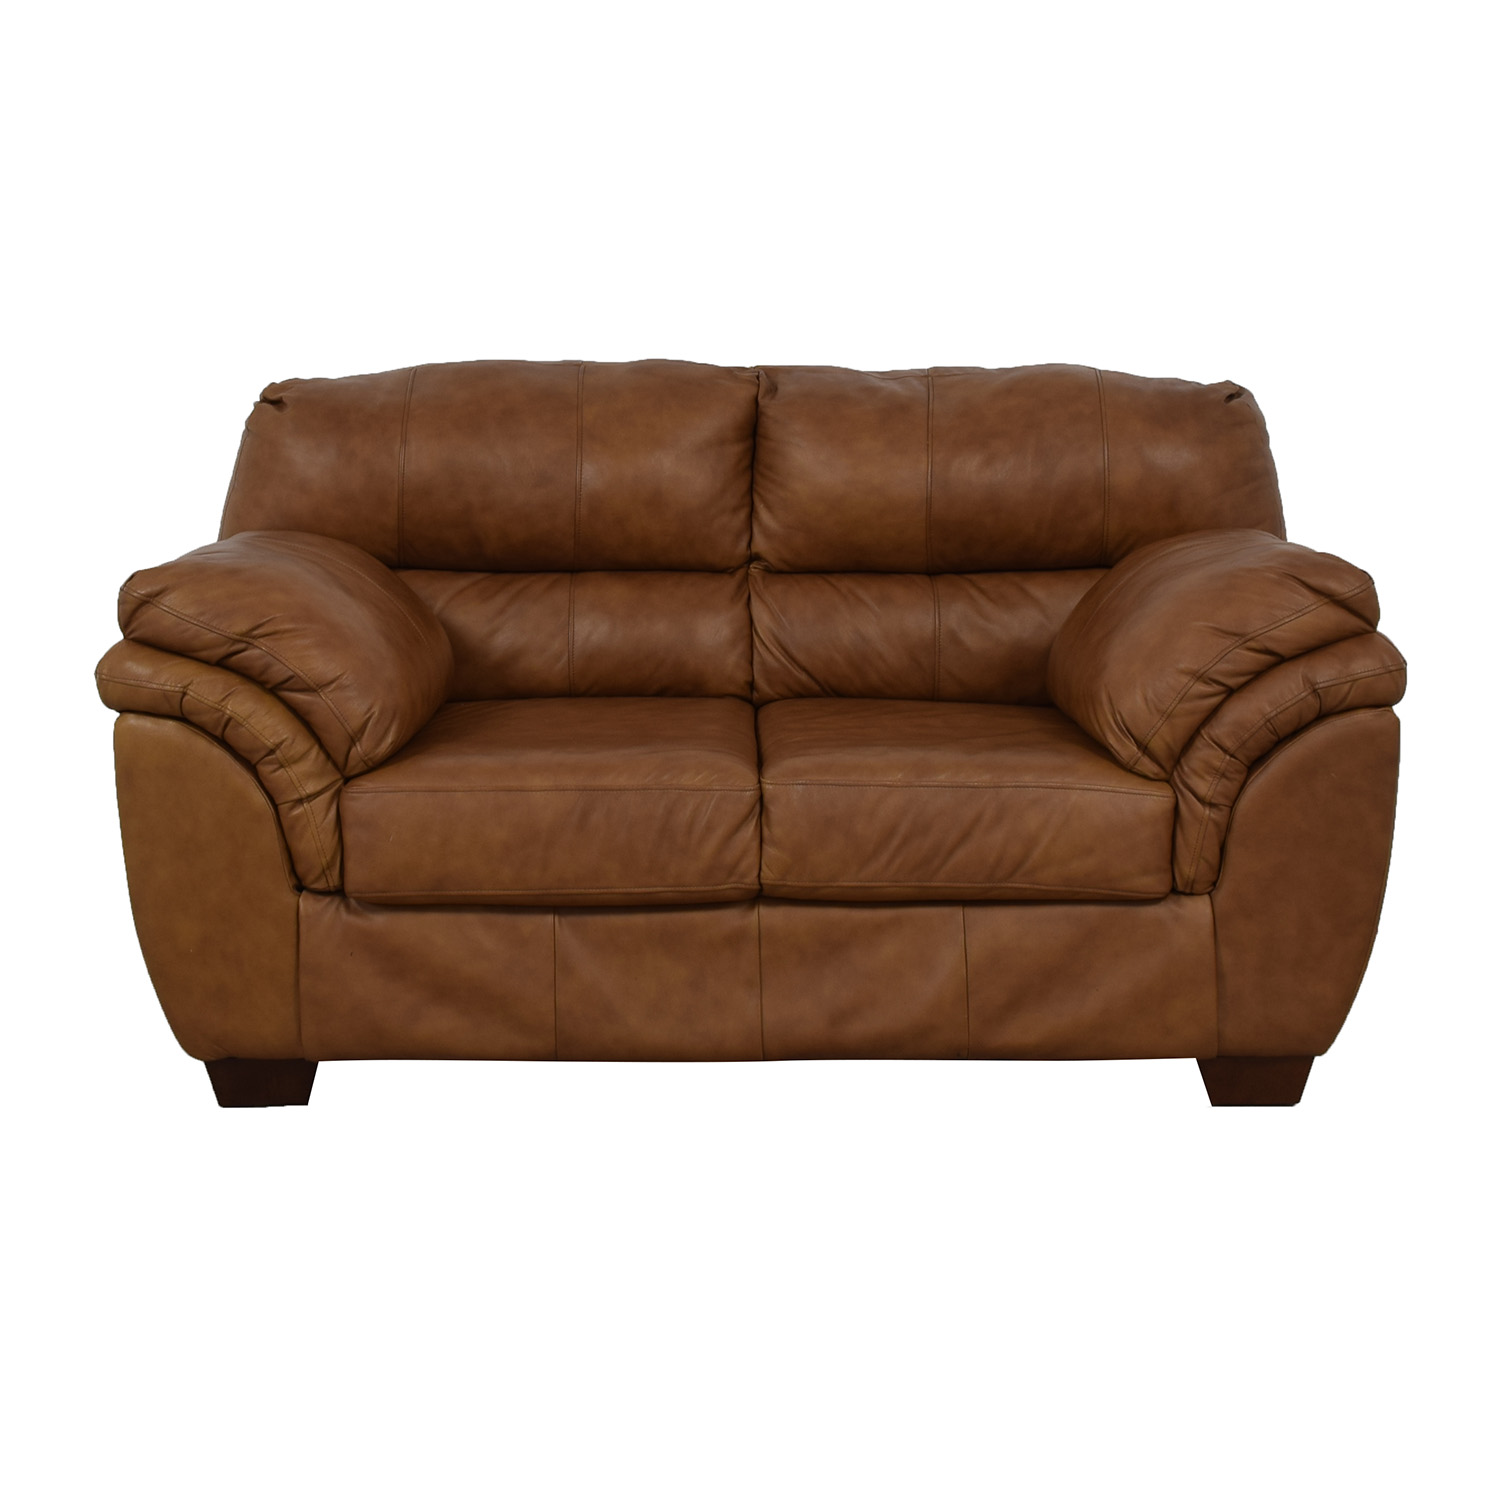 80 Off Jennifer Furniture Jennifer Convertibles Brown